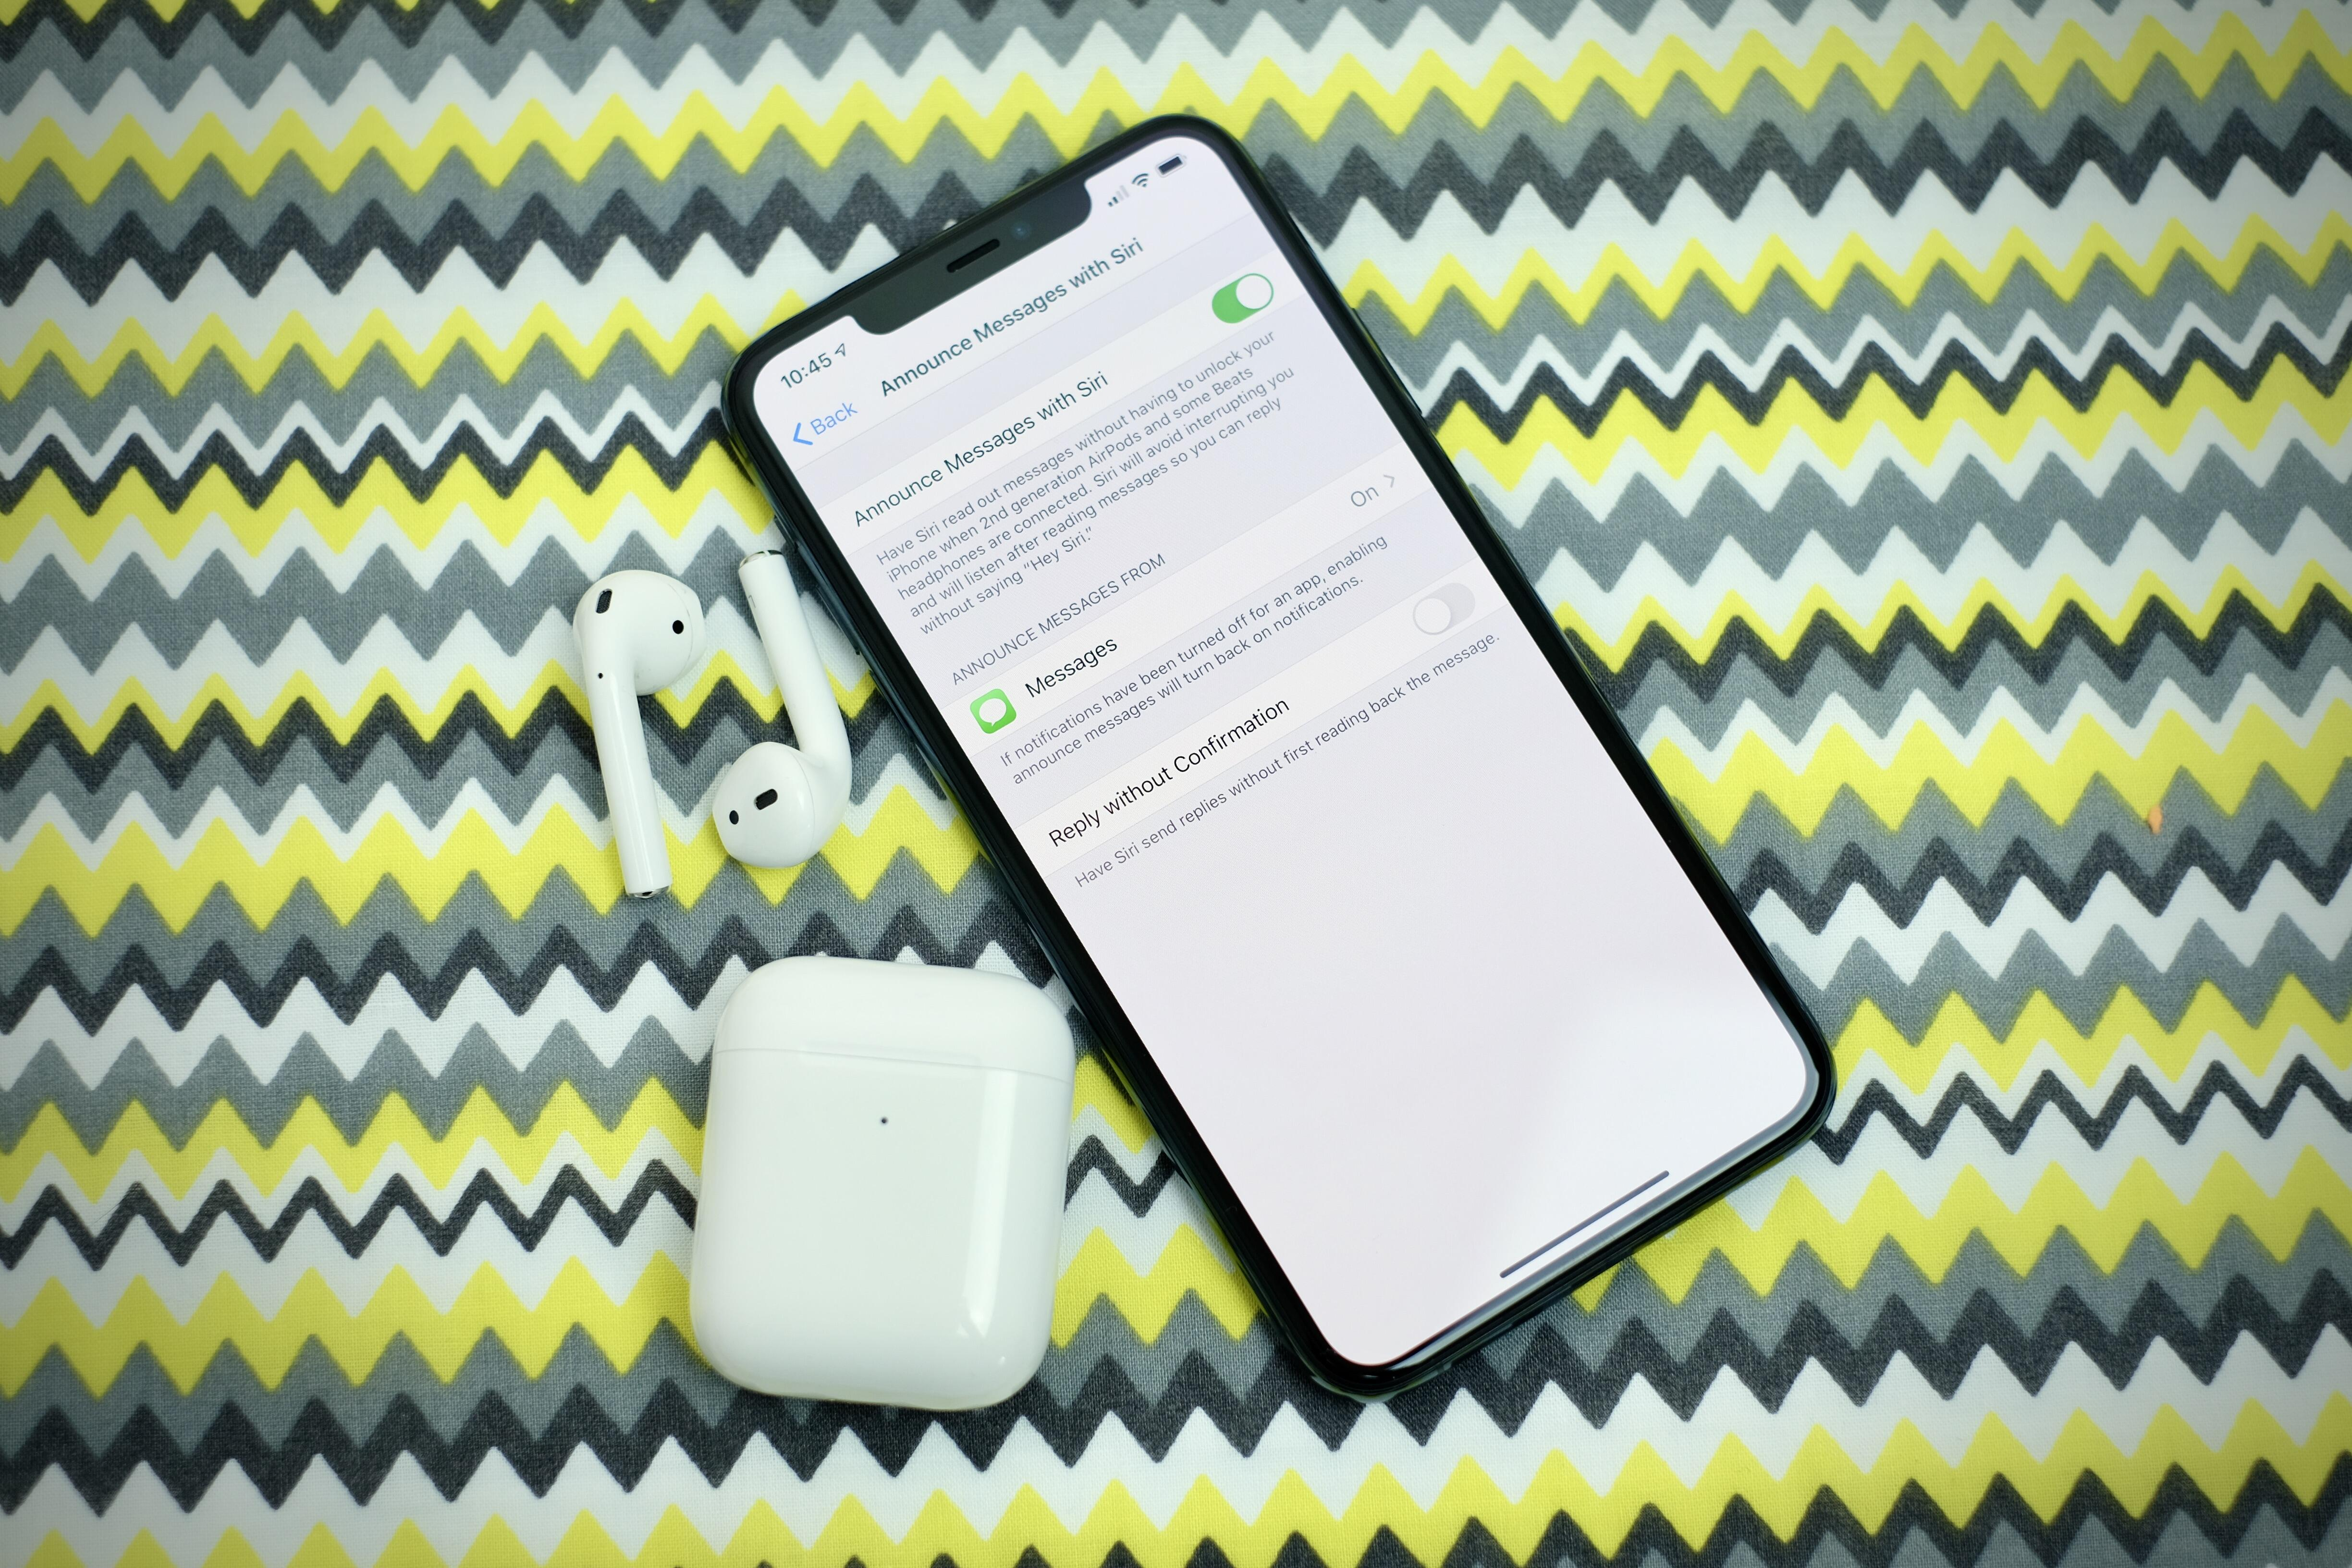 announce-messages-with-siri